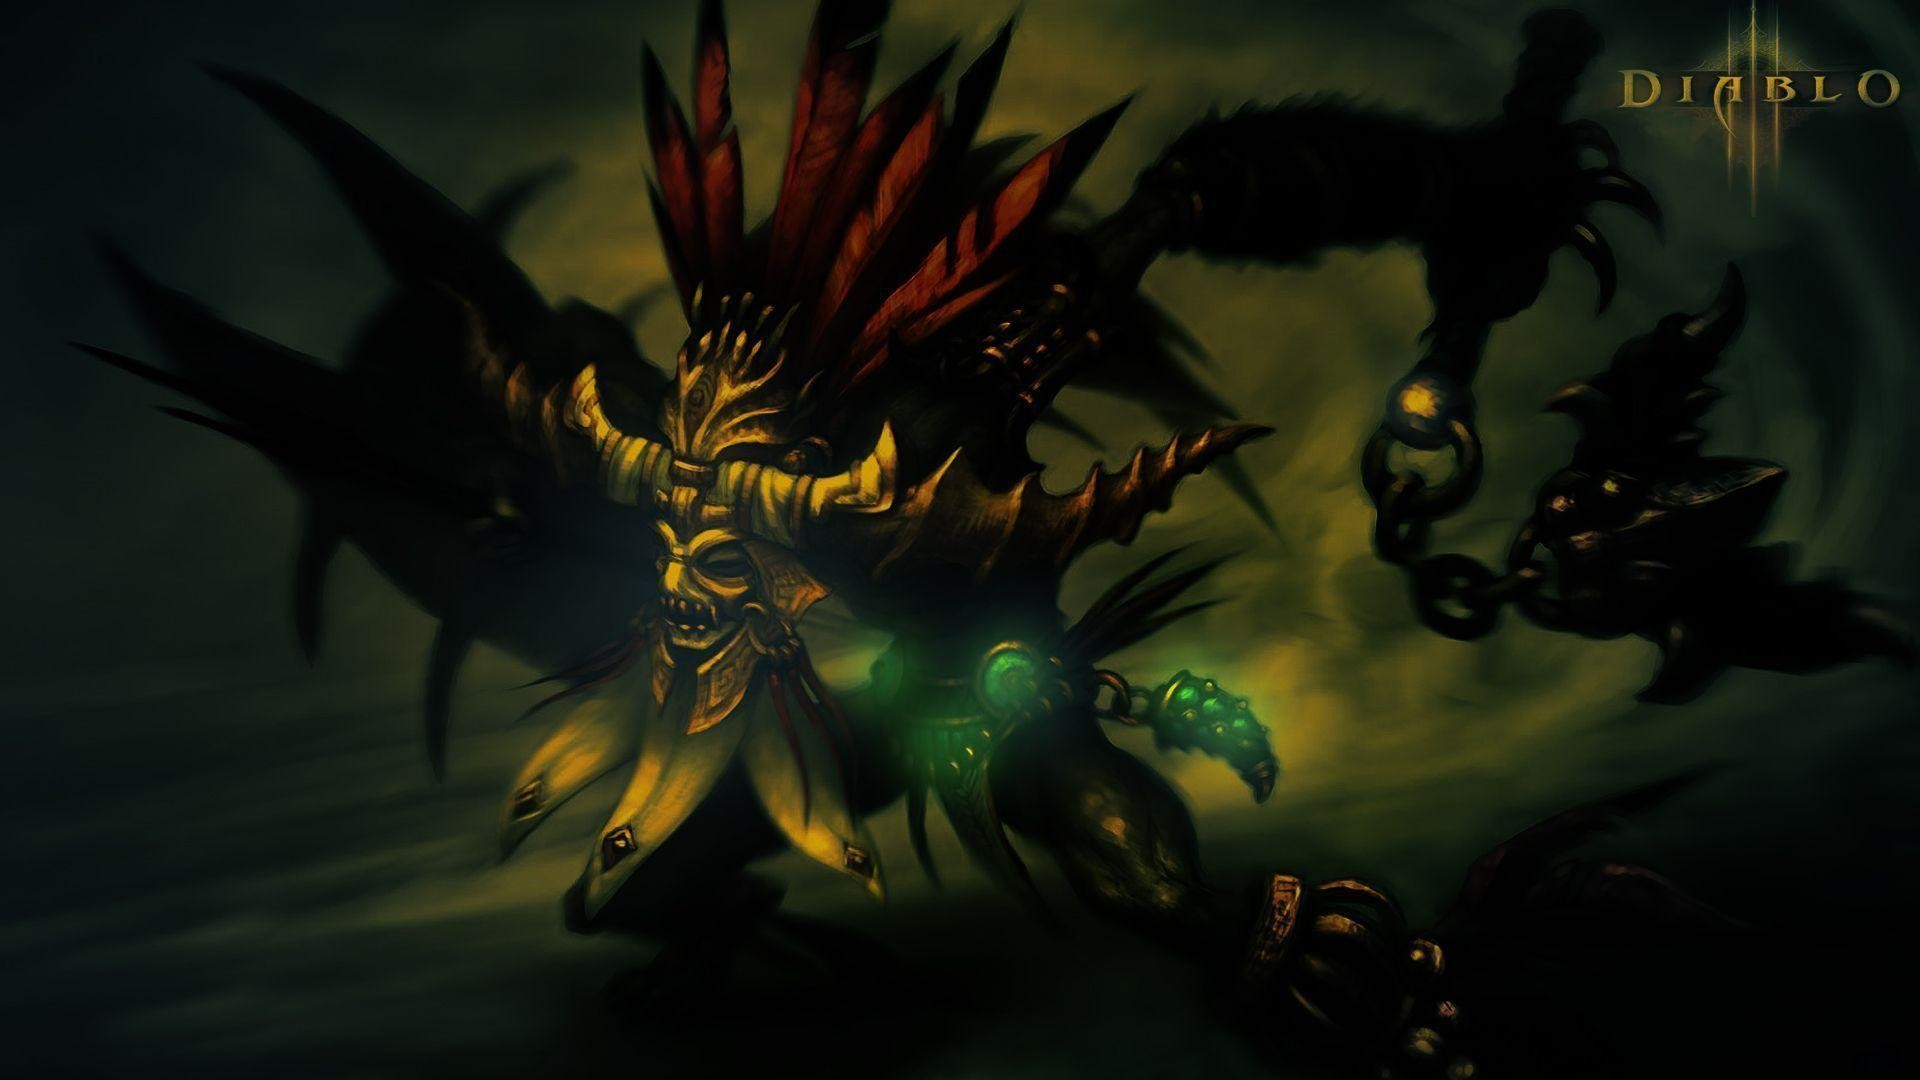 Res: 1920x1080, Diablo III: the shaman wallpapers and images - wallpapers .